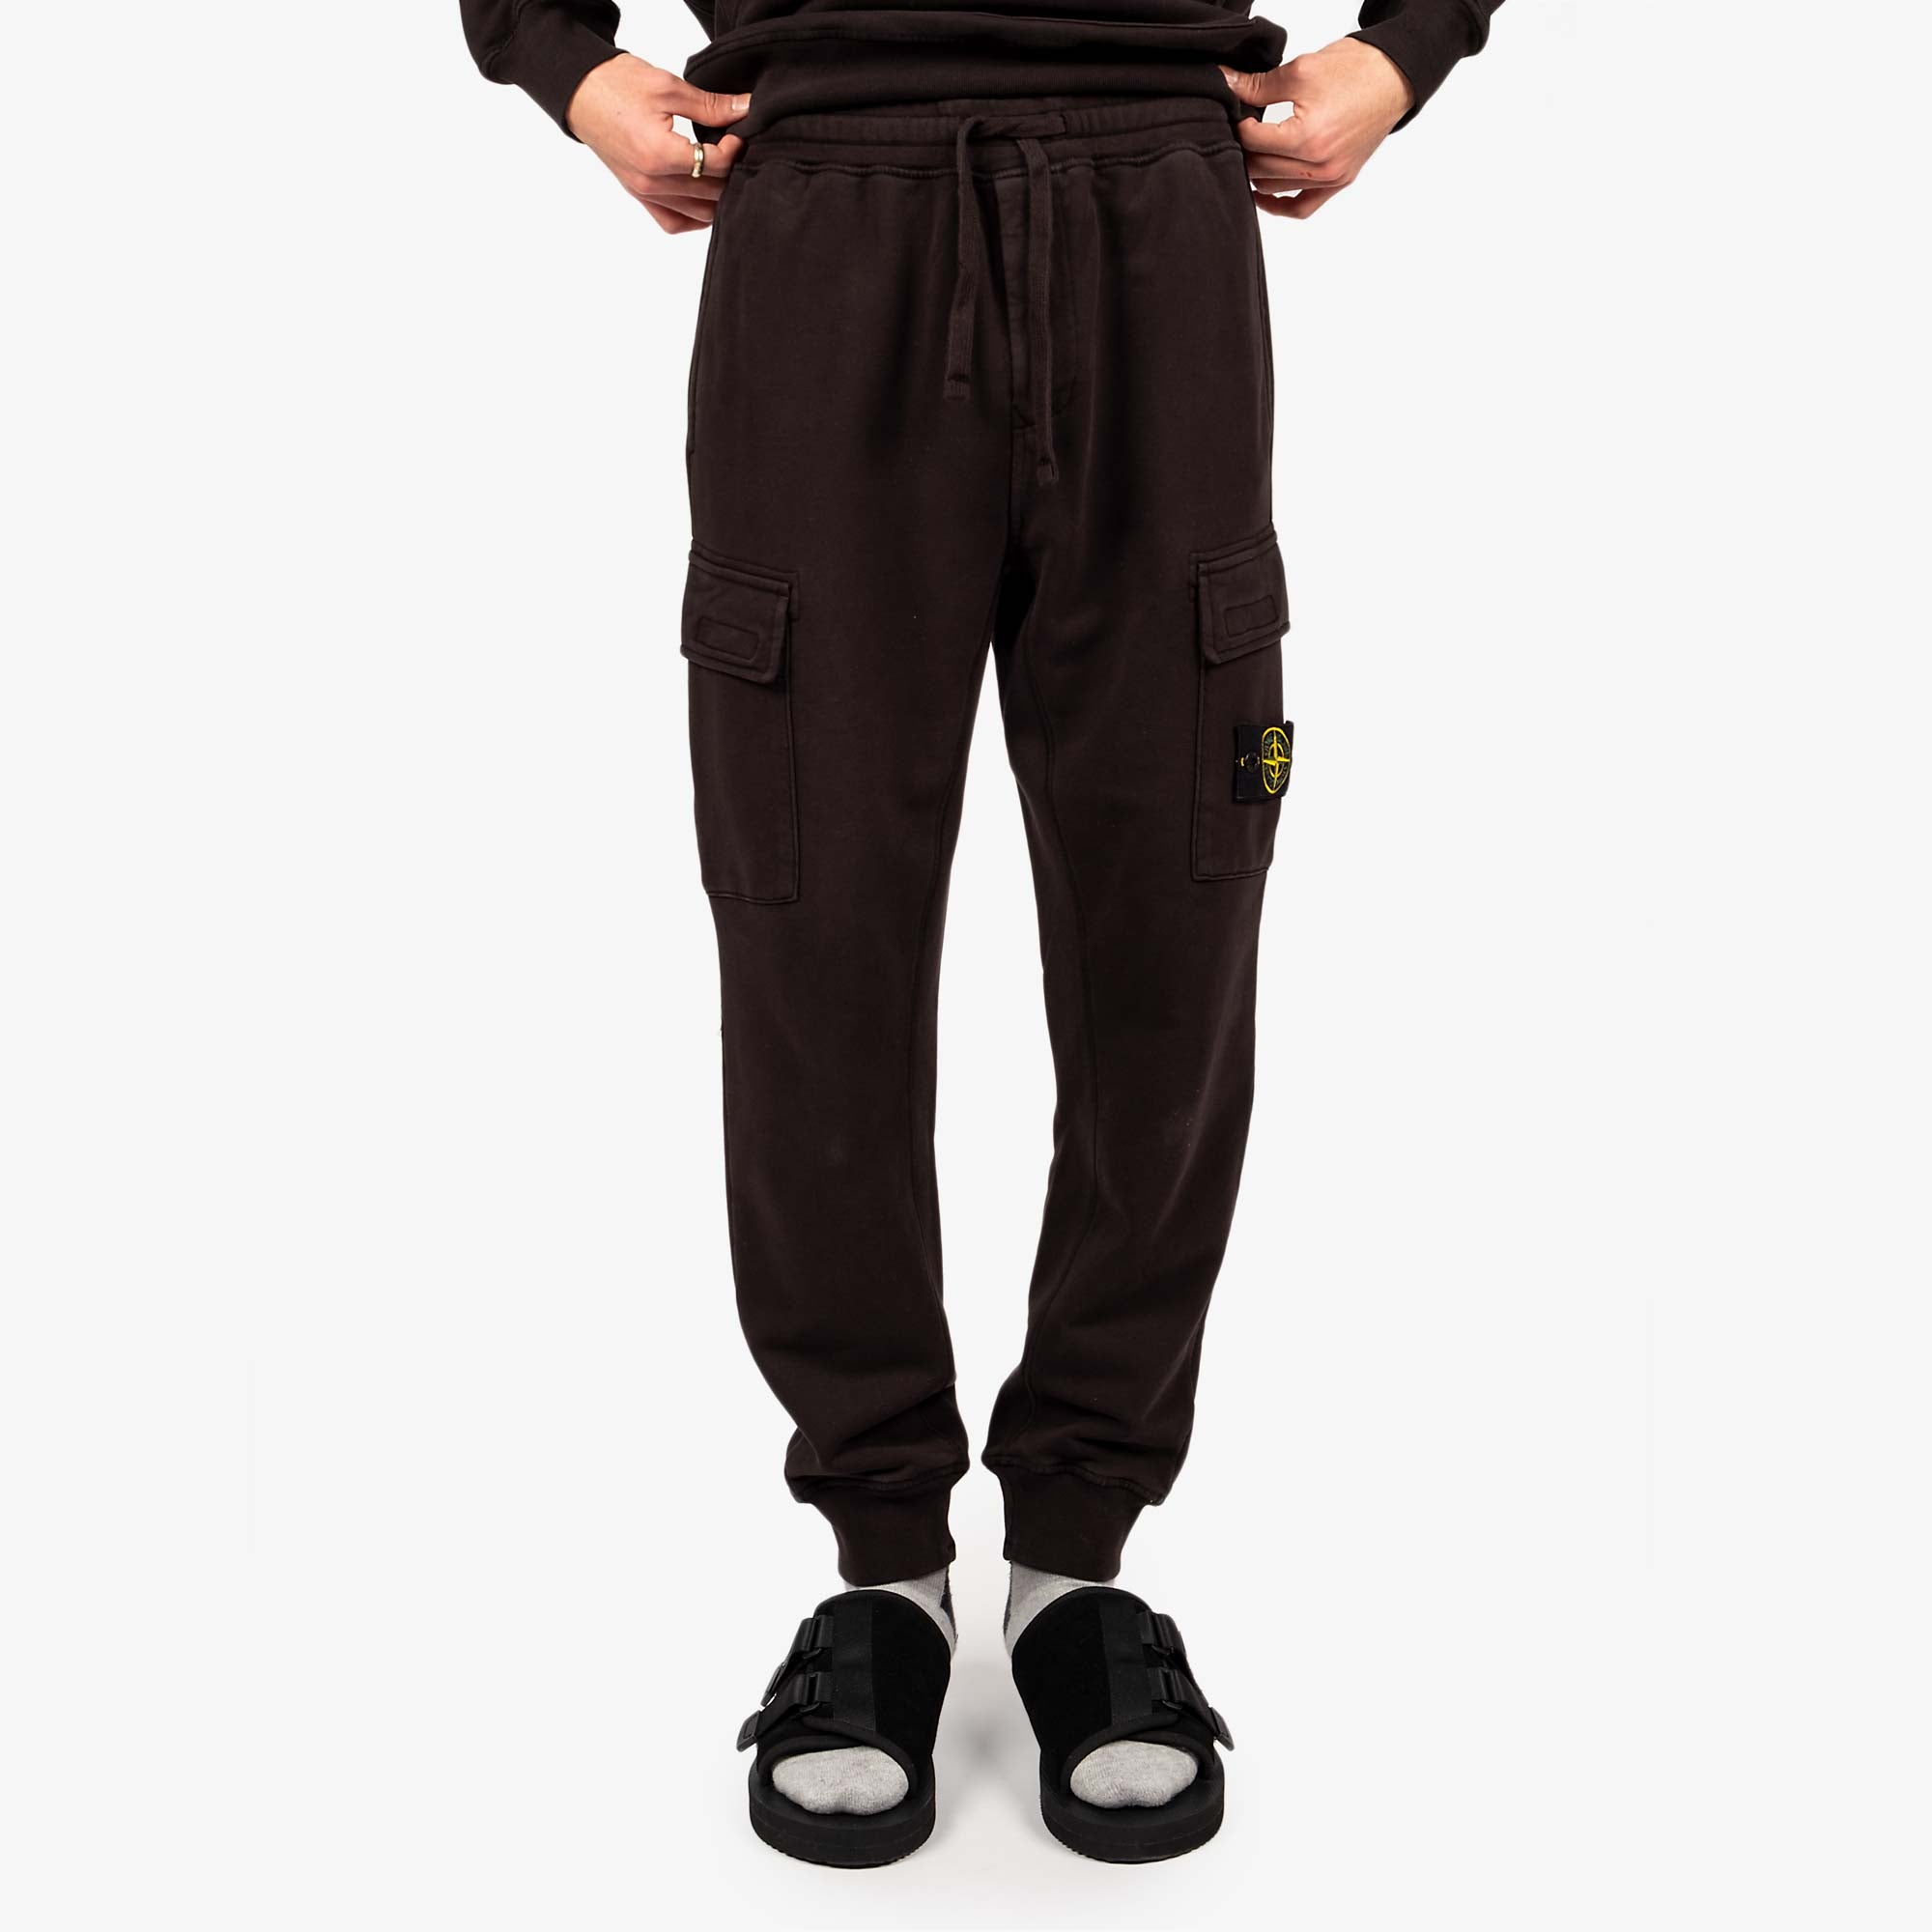 Stone Island Fleece Pants 741565251 - Black 7